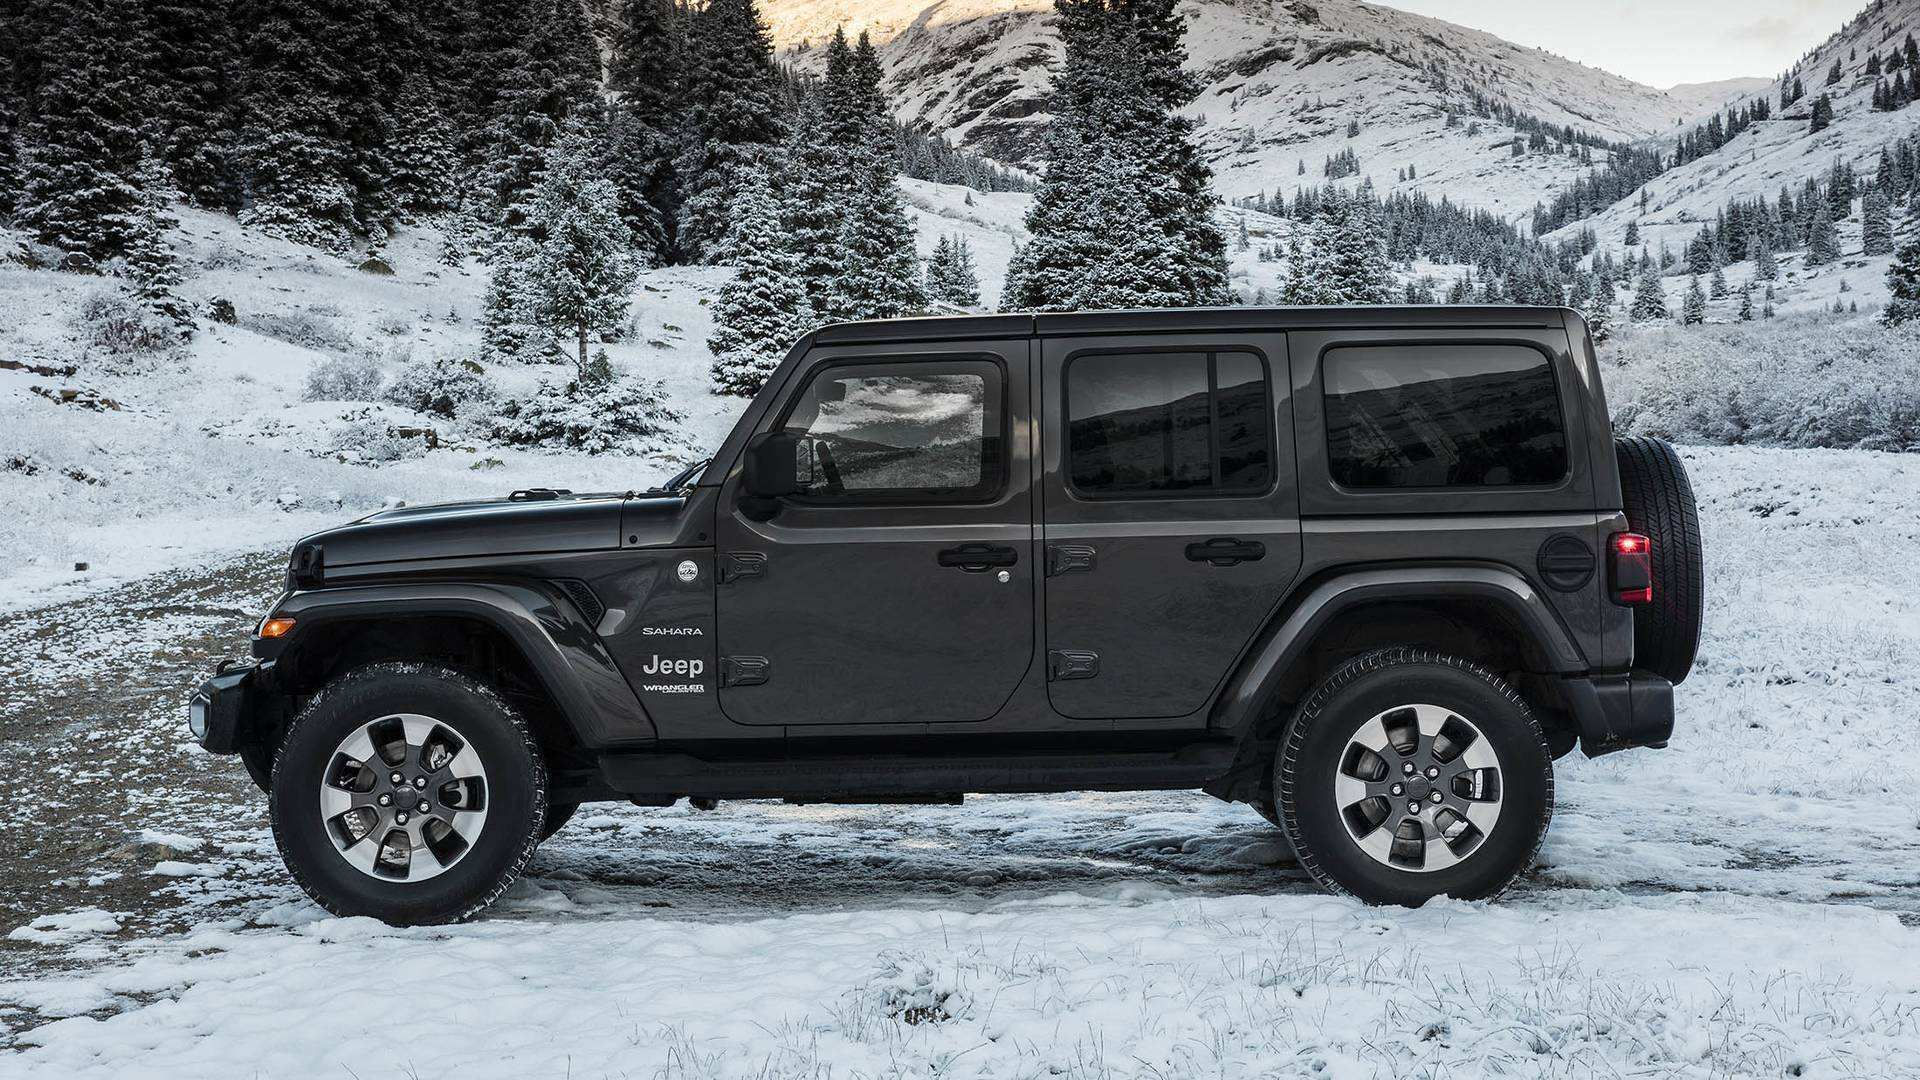 88 Best 2020 The Jeep Wrangler Review